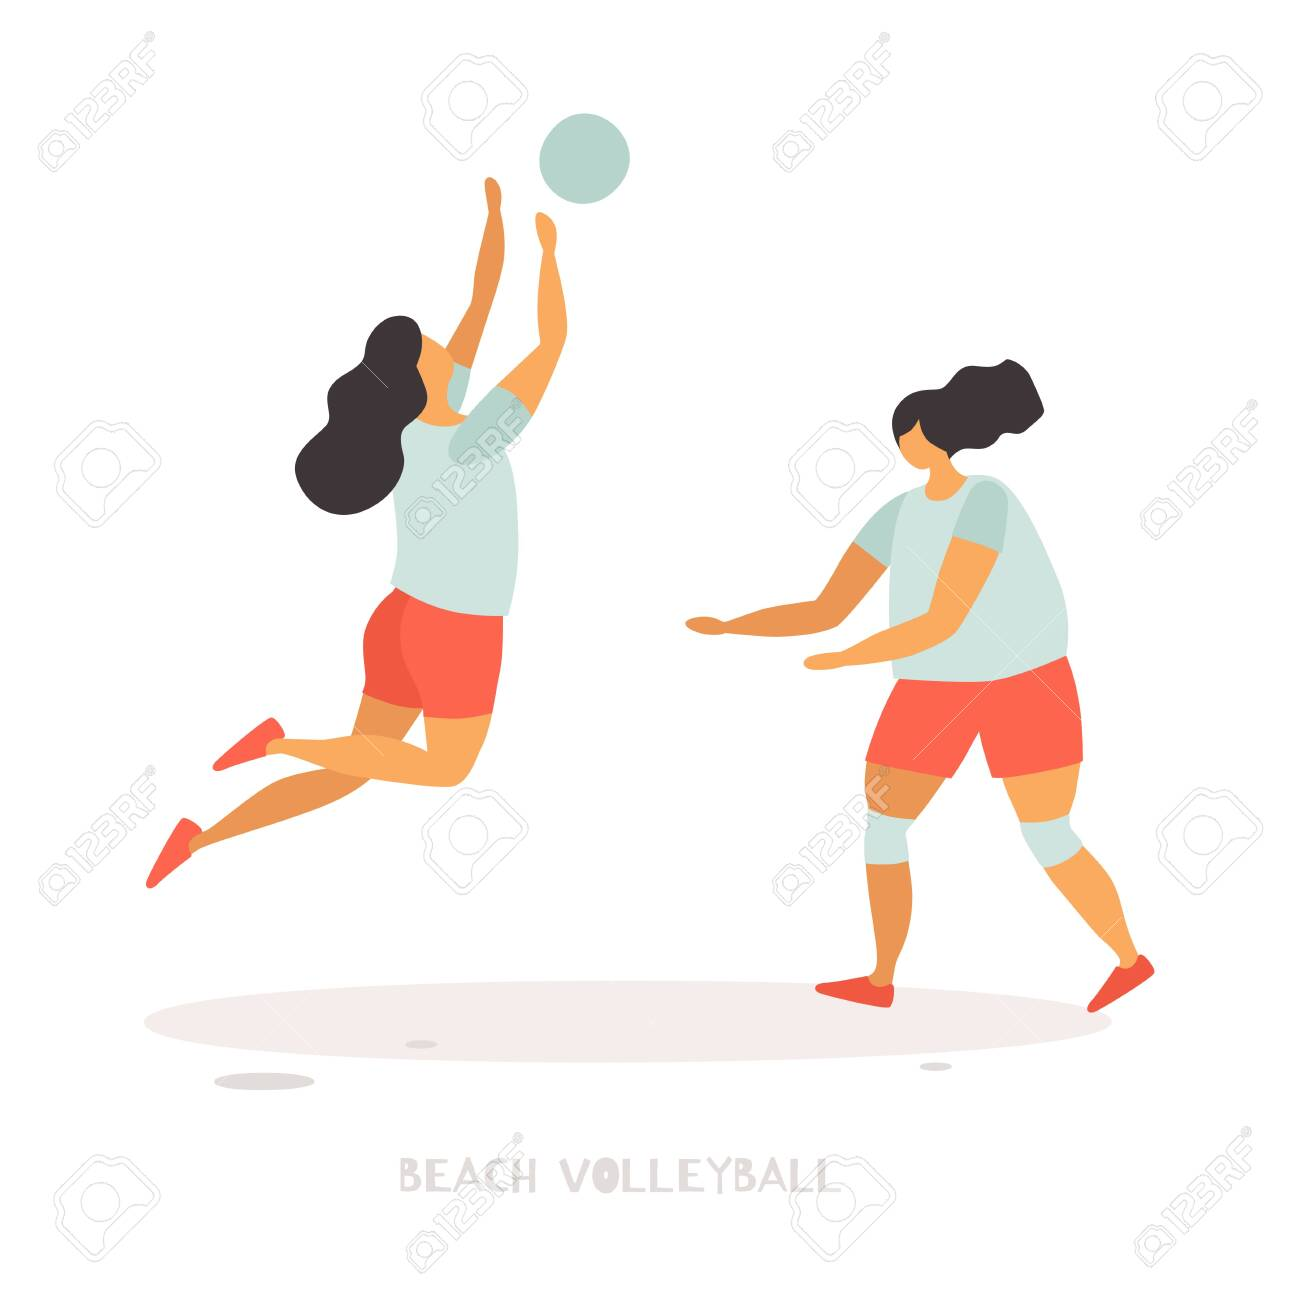 Young girls play beach volleyball. Popular summer sports and outdoor activities. Vector flat illustration on white isolated background. - 150572900